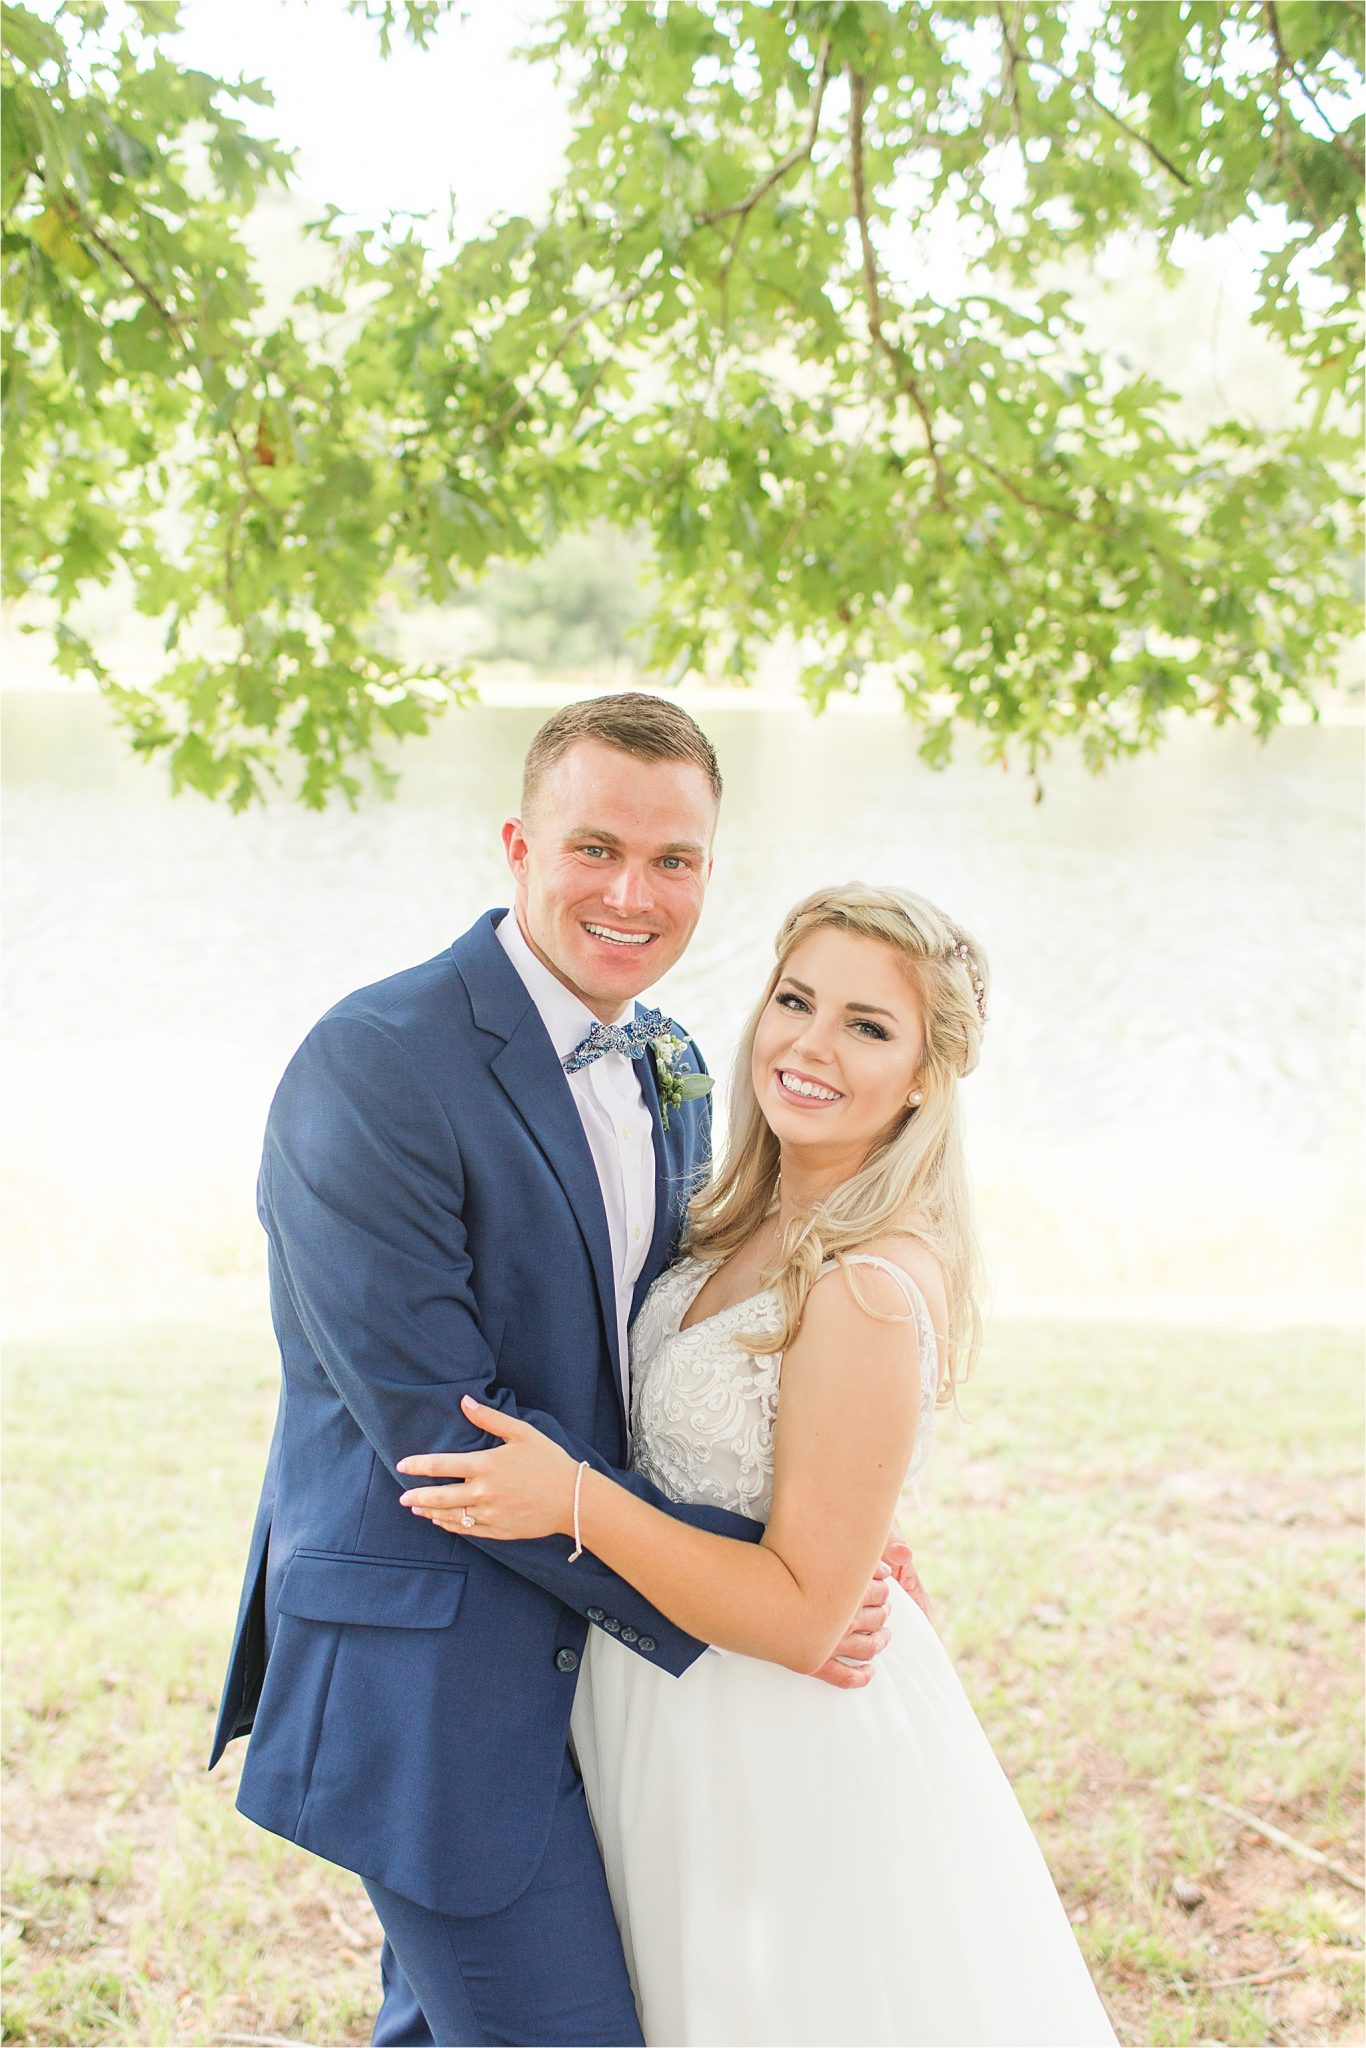 bridal-groom-portraits-photos-blue-suit-bow-tie-first-look